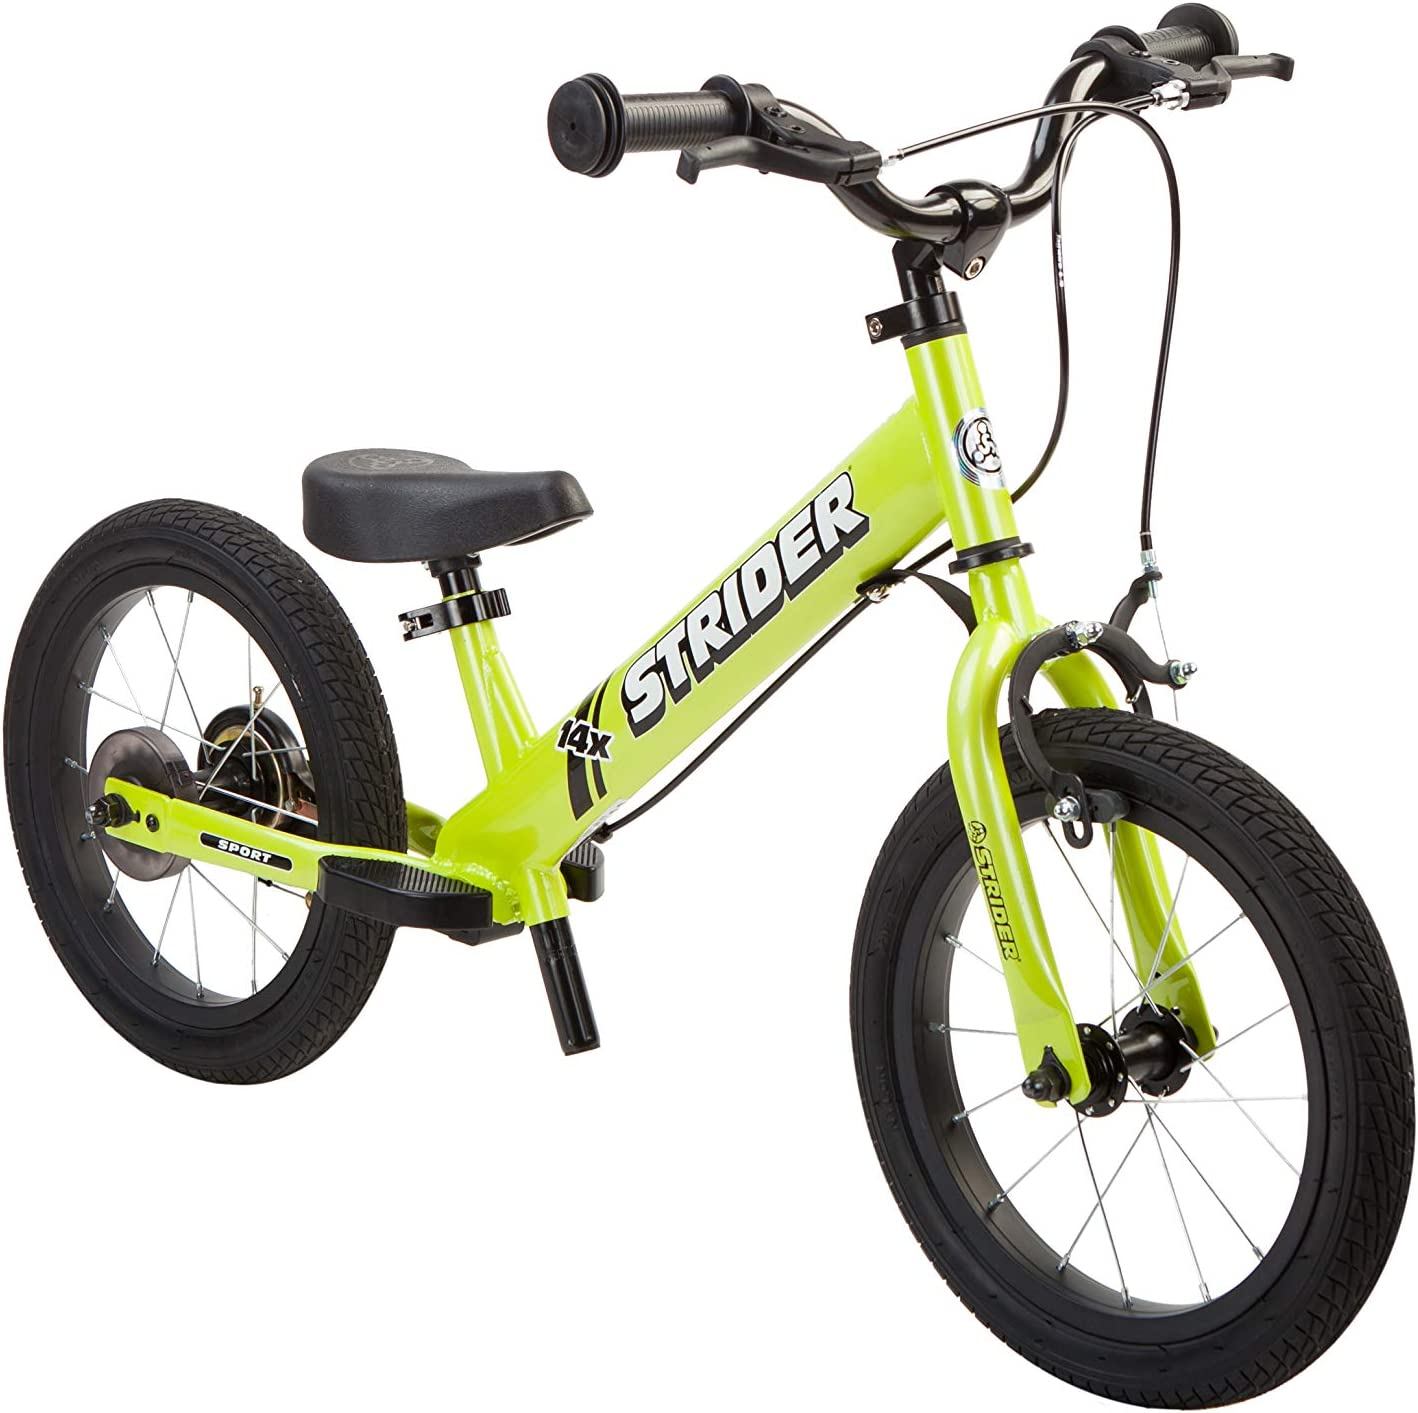 Strider - Discount is also underway 14x Sport Balance Bike Sep At the price of surprise Kit Conversion Pedal Sold